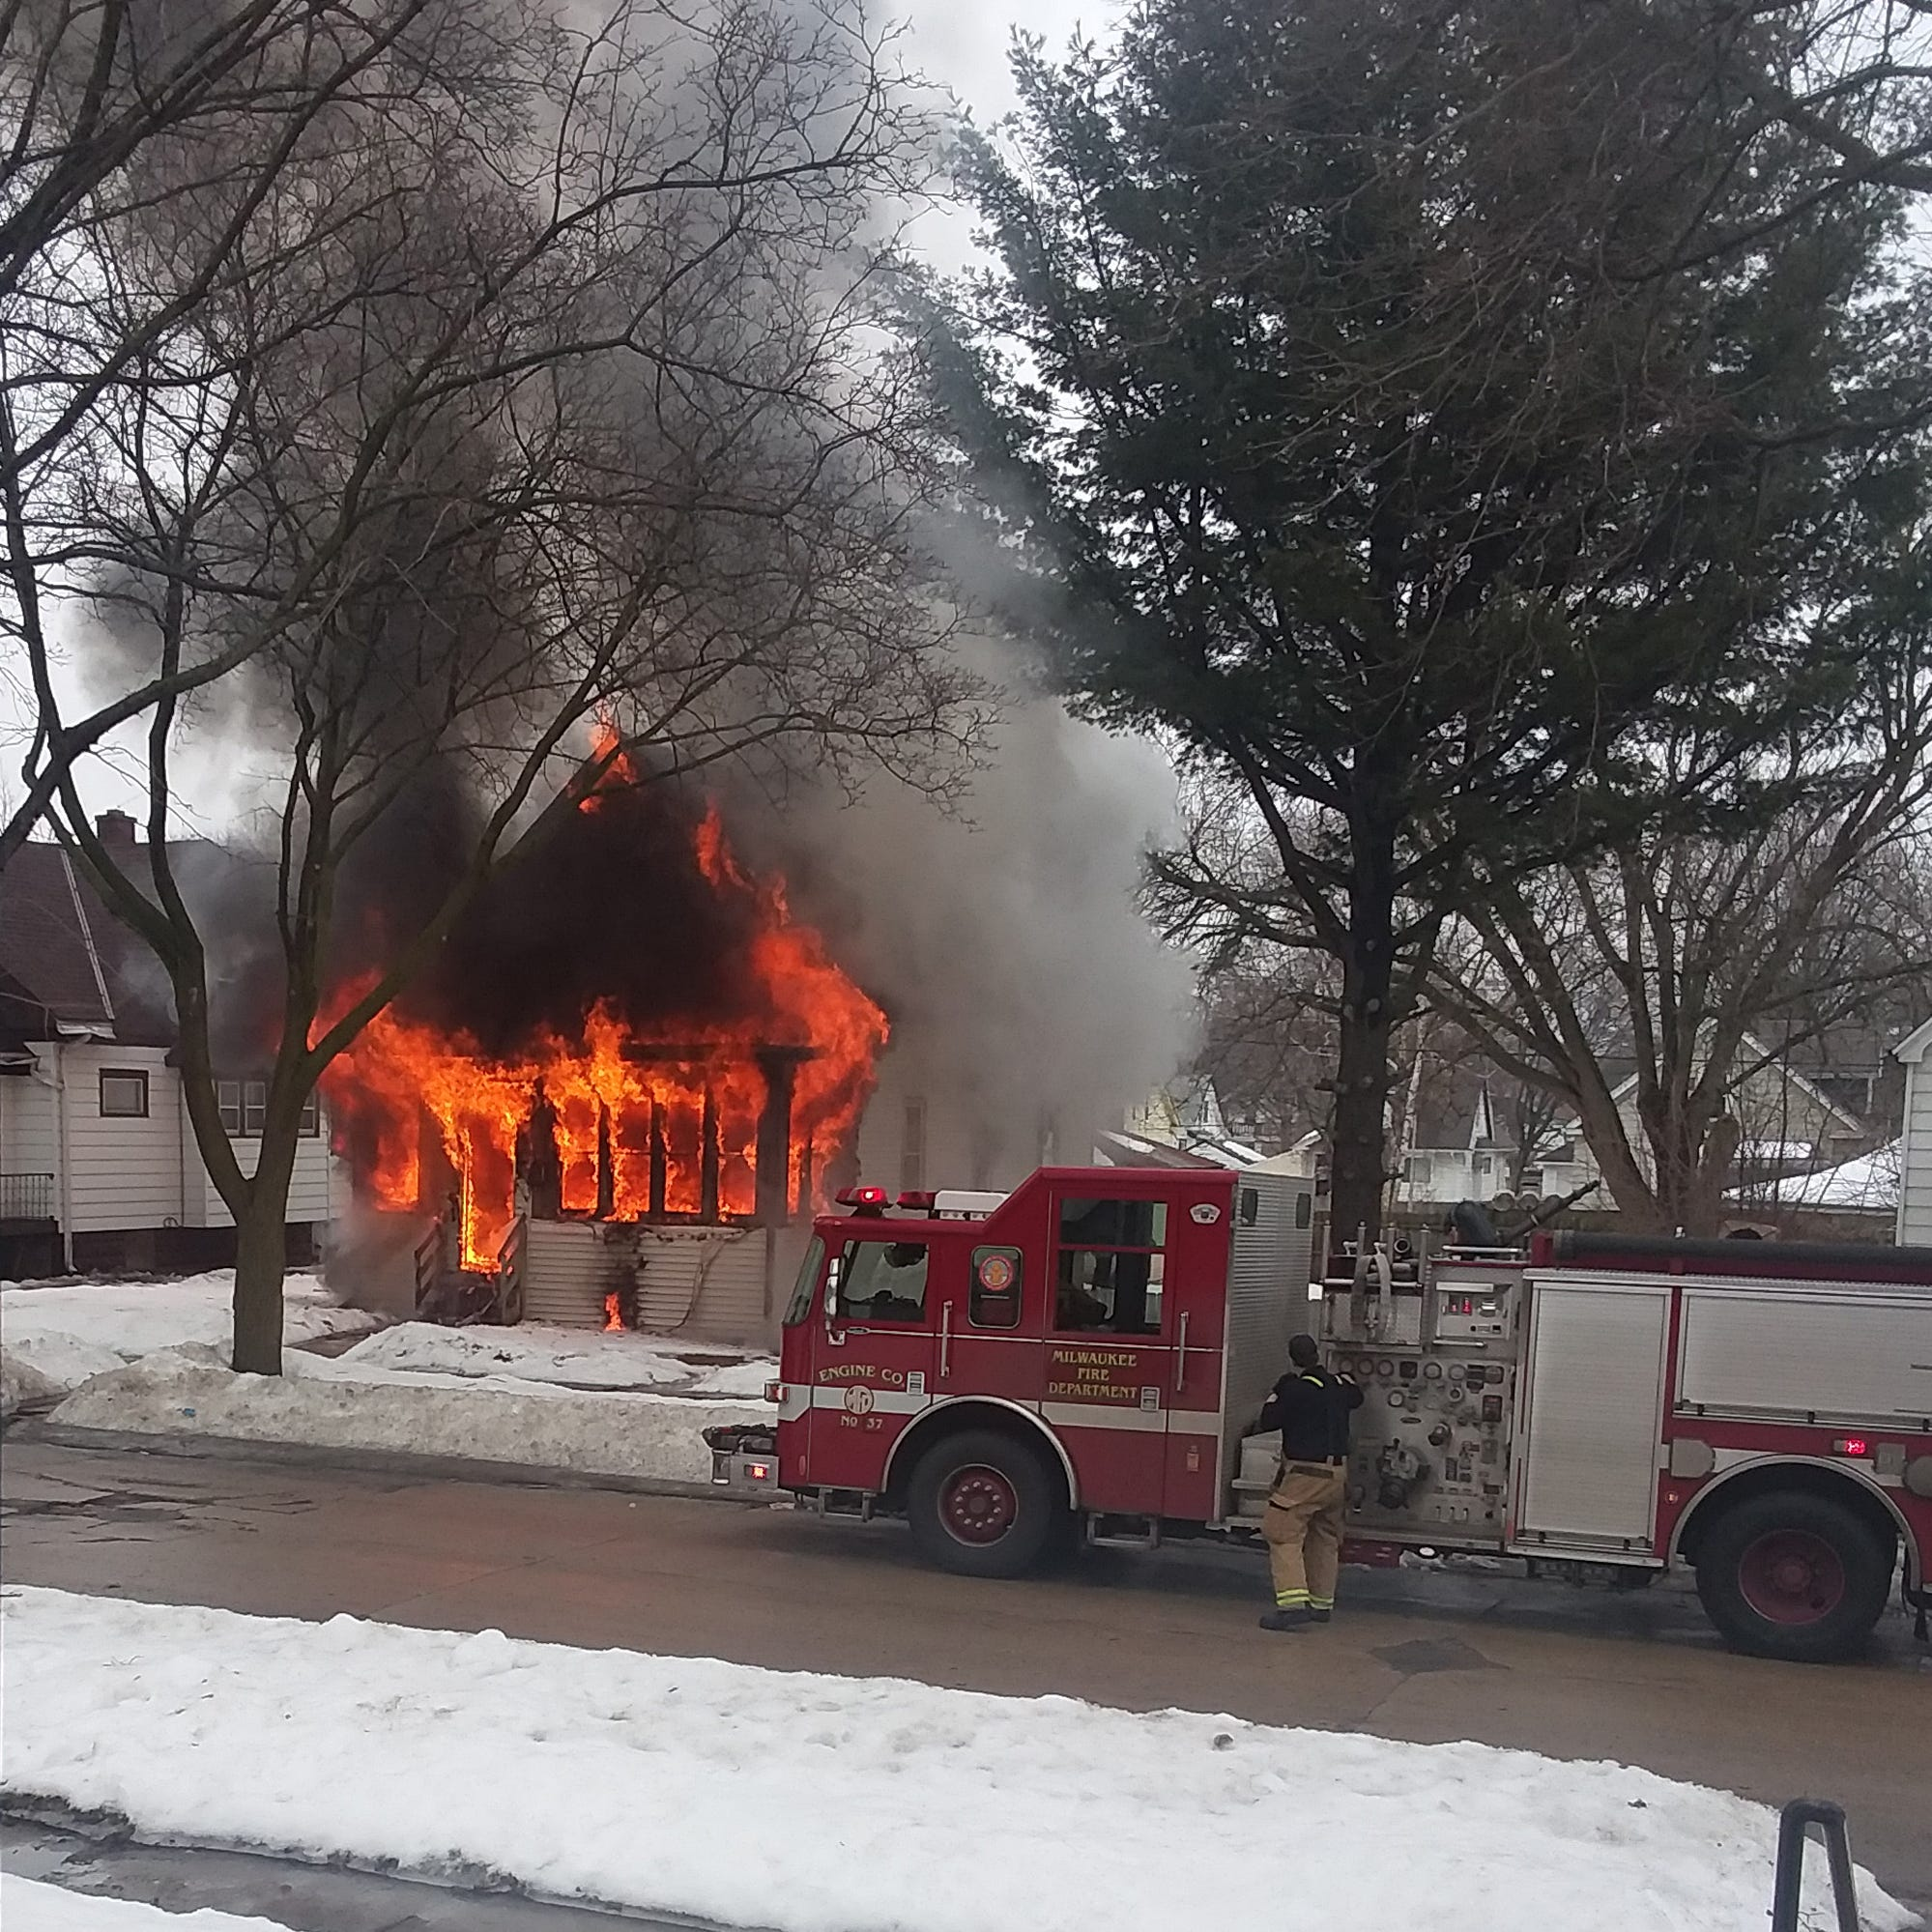 A 4-year-old boy and a 60-year-old man died in a house fire on Milwaukee's north side